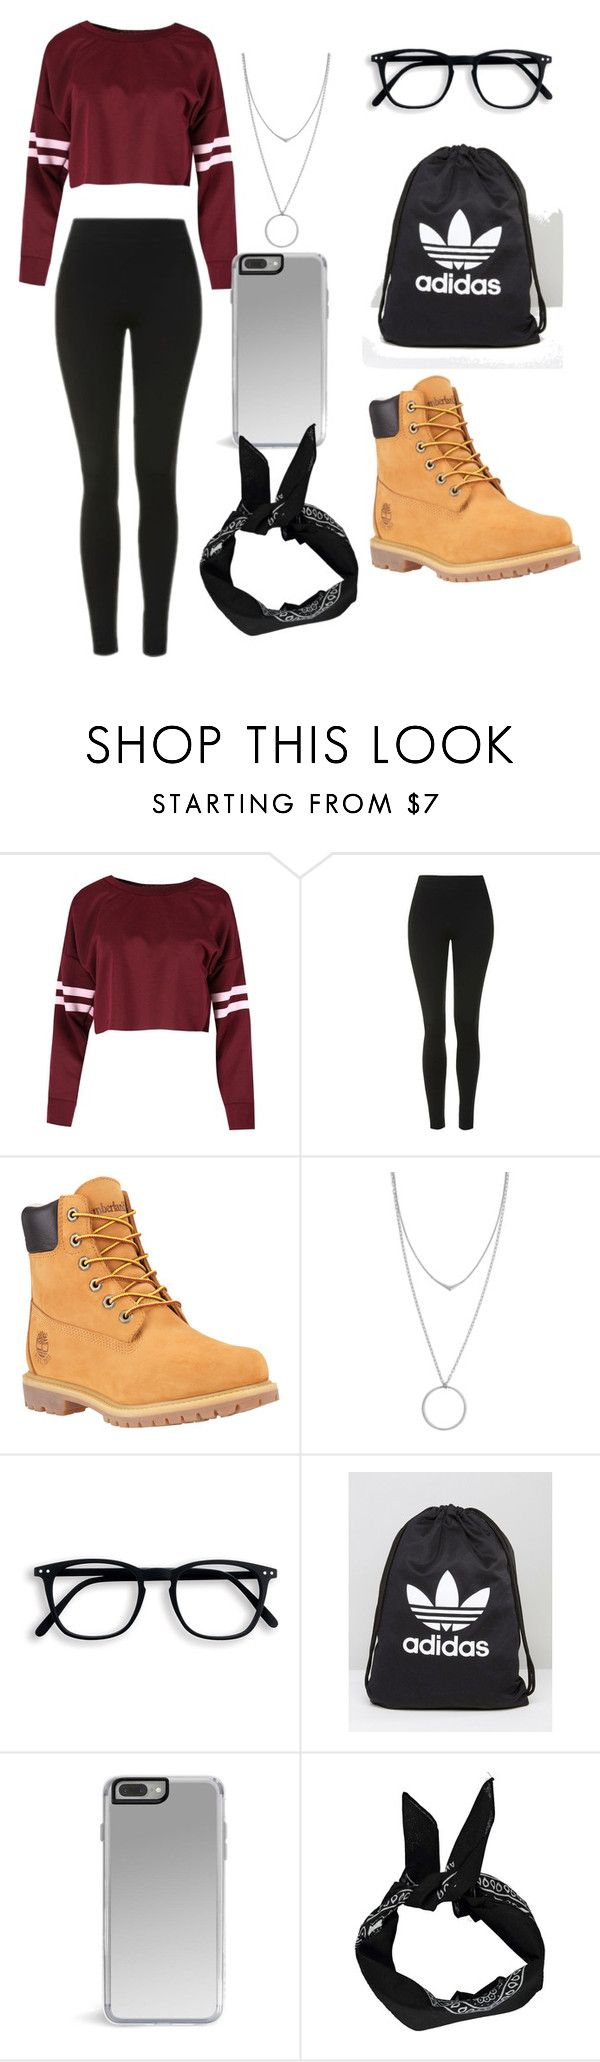 """Not ready for school"" by killingit121 on Polyvore featuring Topshop, Timberland, Botkier, adidas and Boohoo"